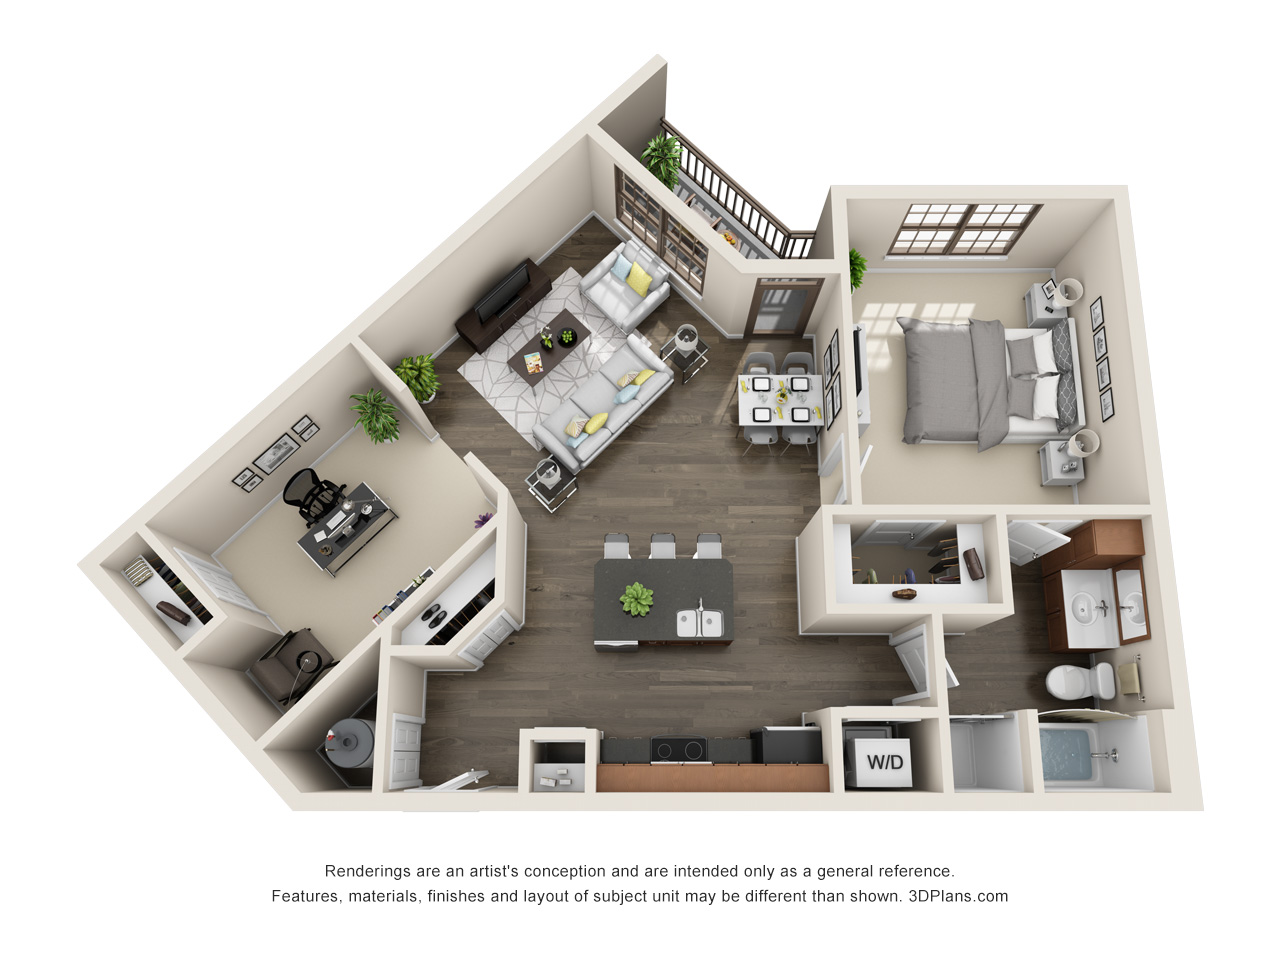 The Lexington Dillworth 1 bedroom/1 bath THE PARK floorplan